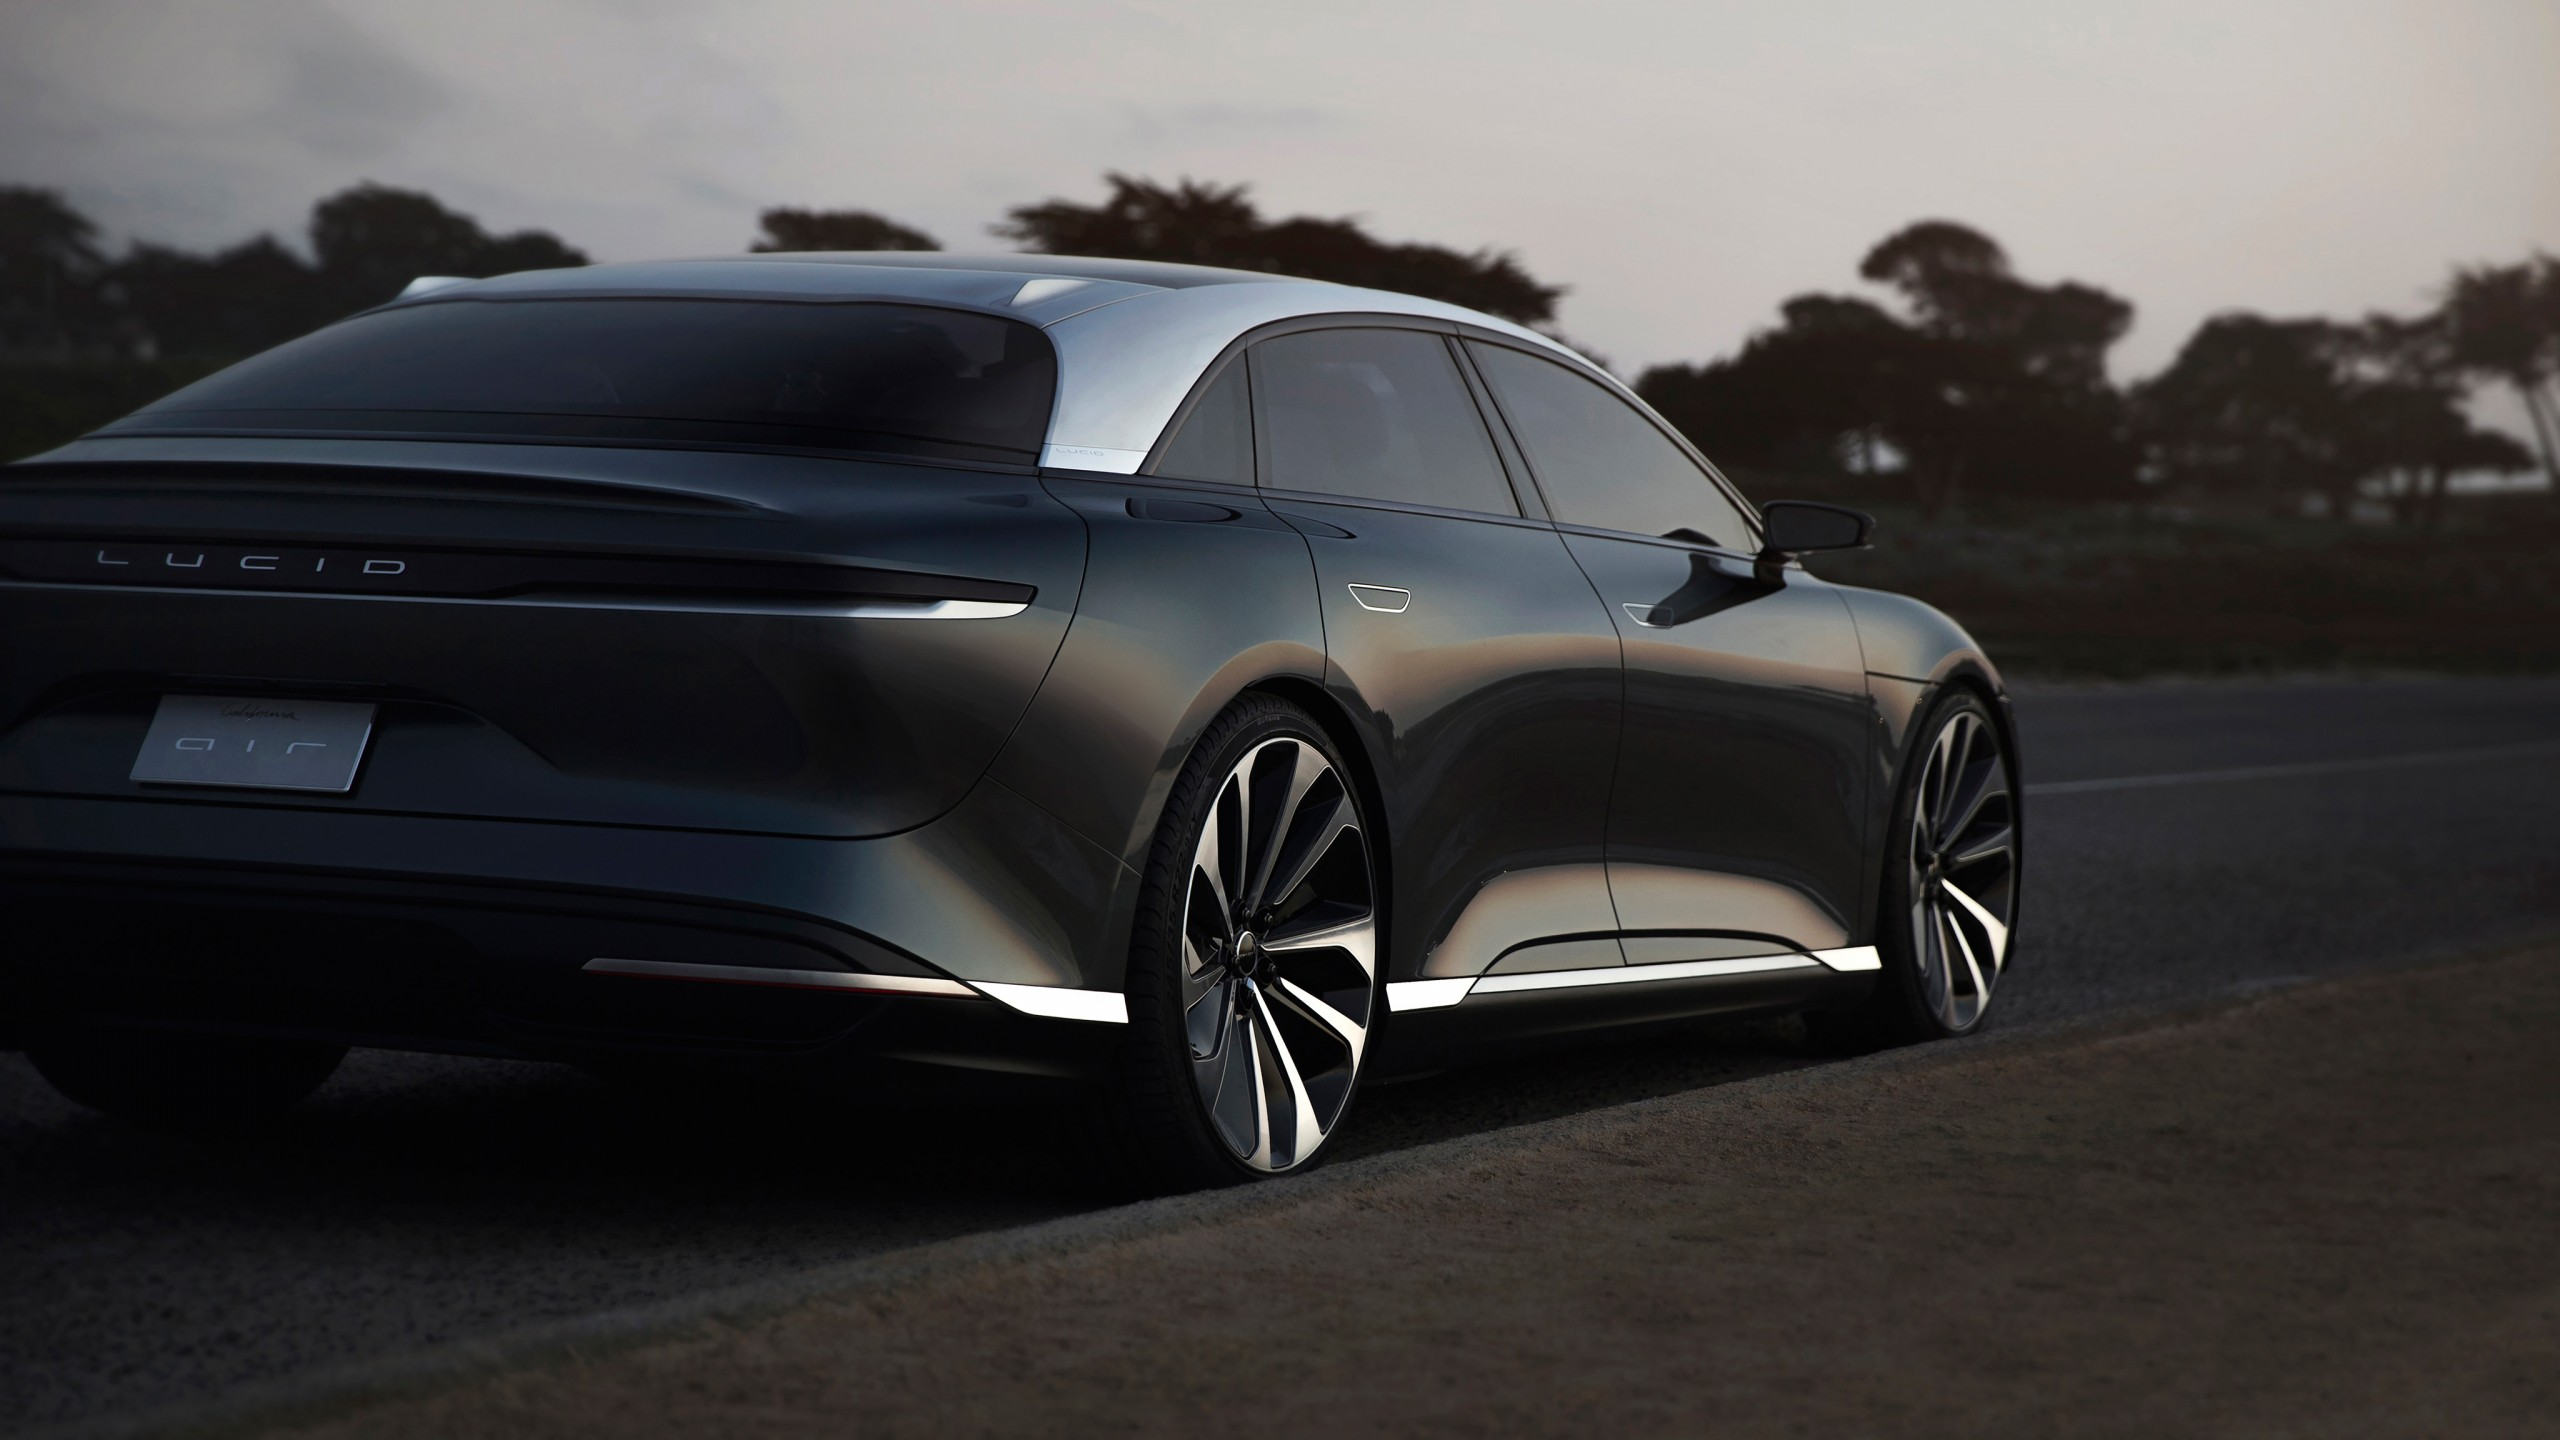 Colorado Air Quality >> Lucid Air Prototype 7 Wallpaper | HD Car Wallpapers | ID #8223